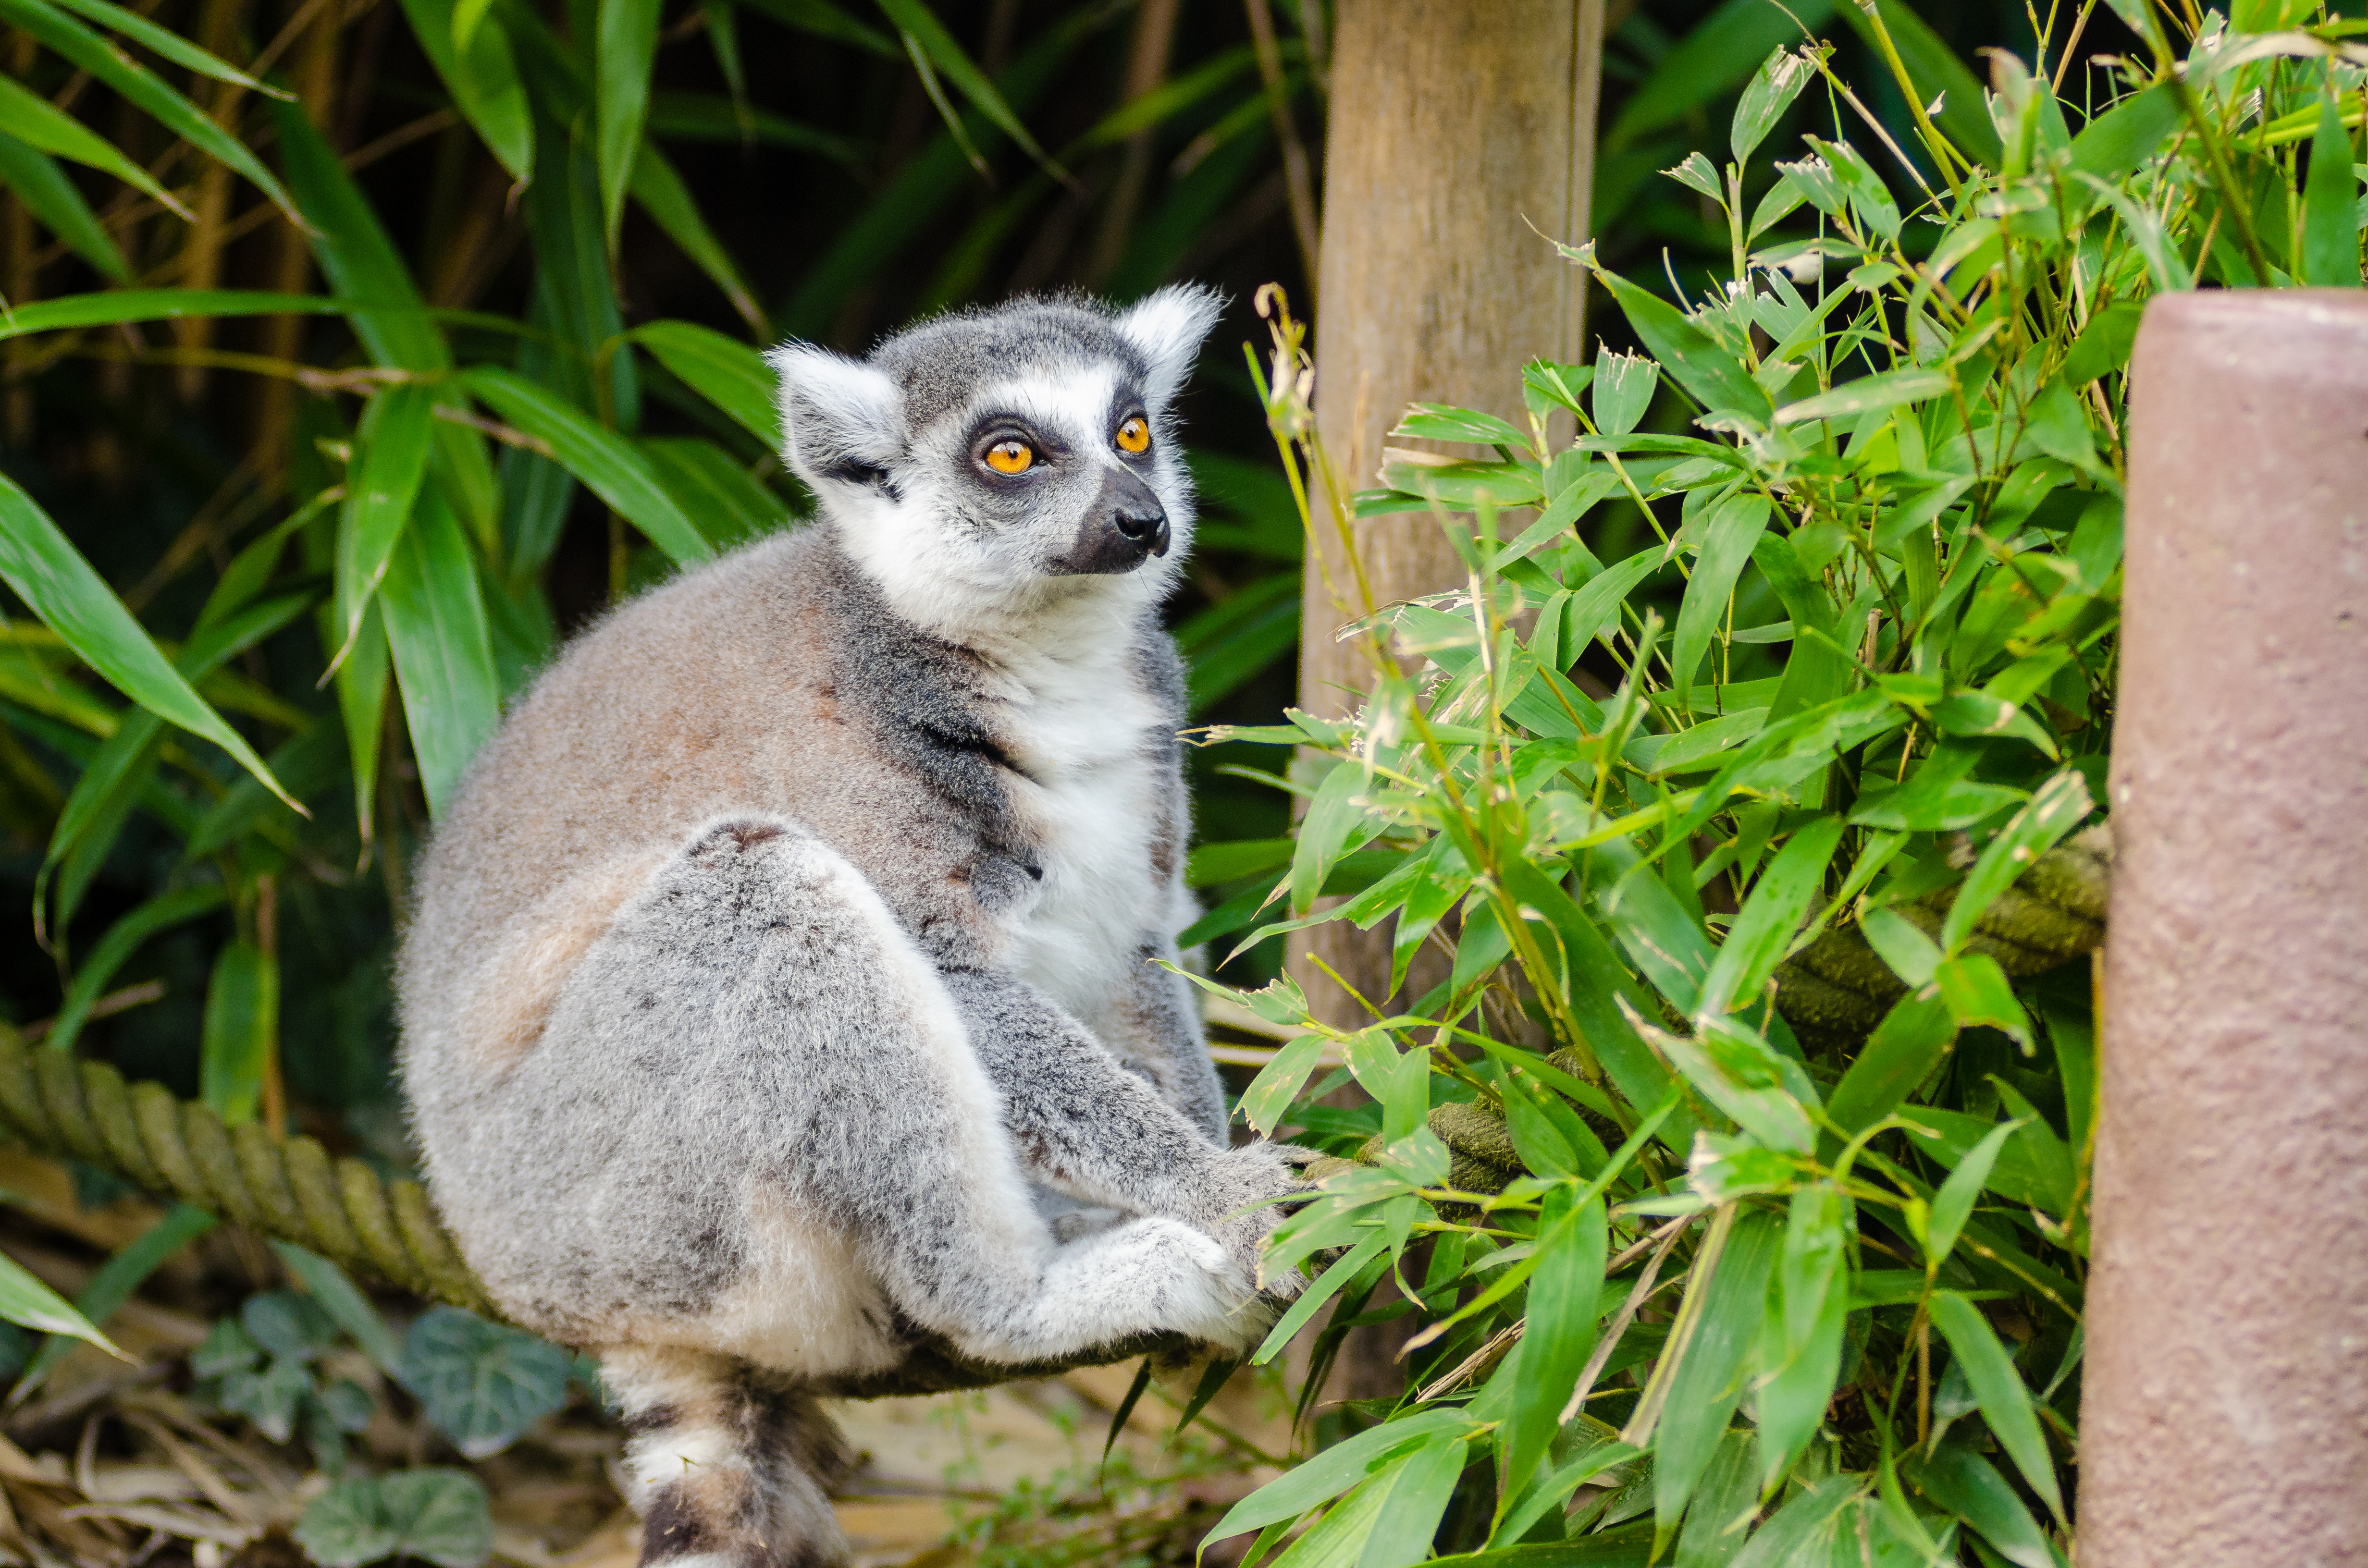 Ring-Tailed Lemur Dad, Adorable, Pet, Lemur, Madagascar, HQ Photo